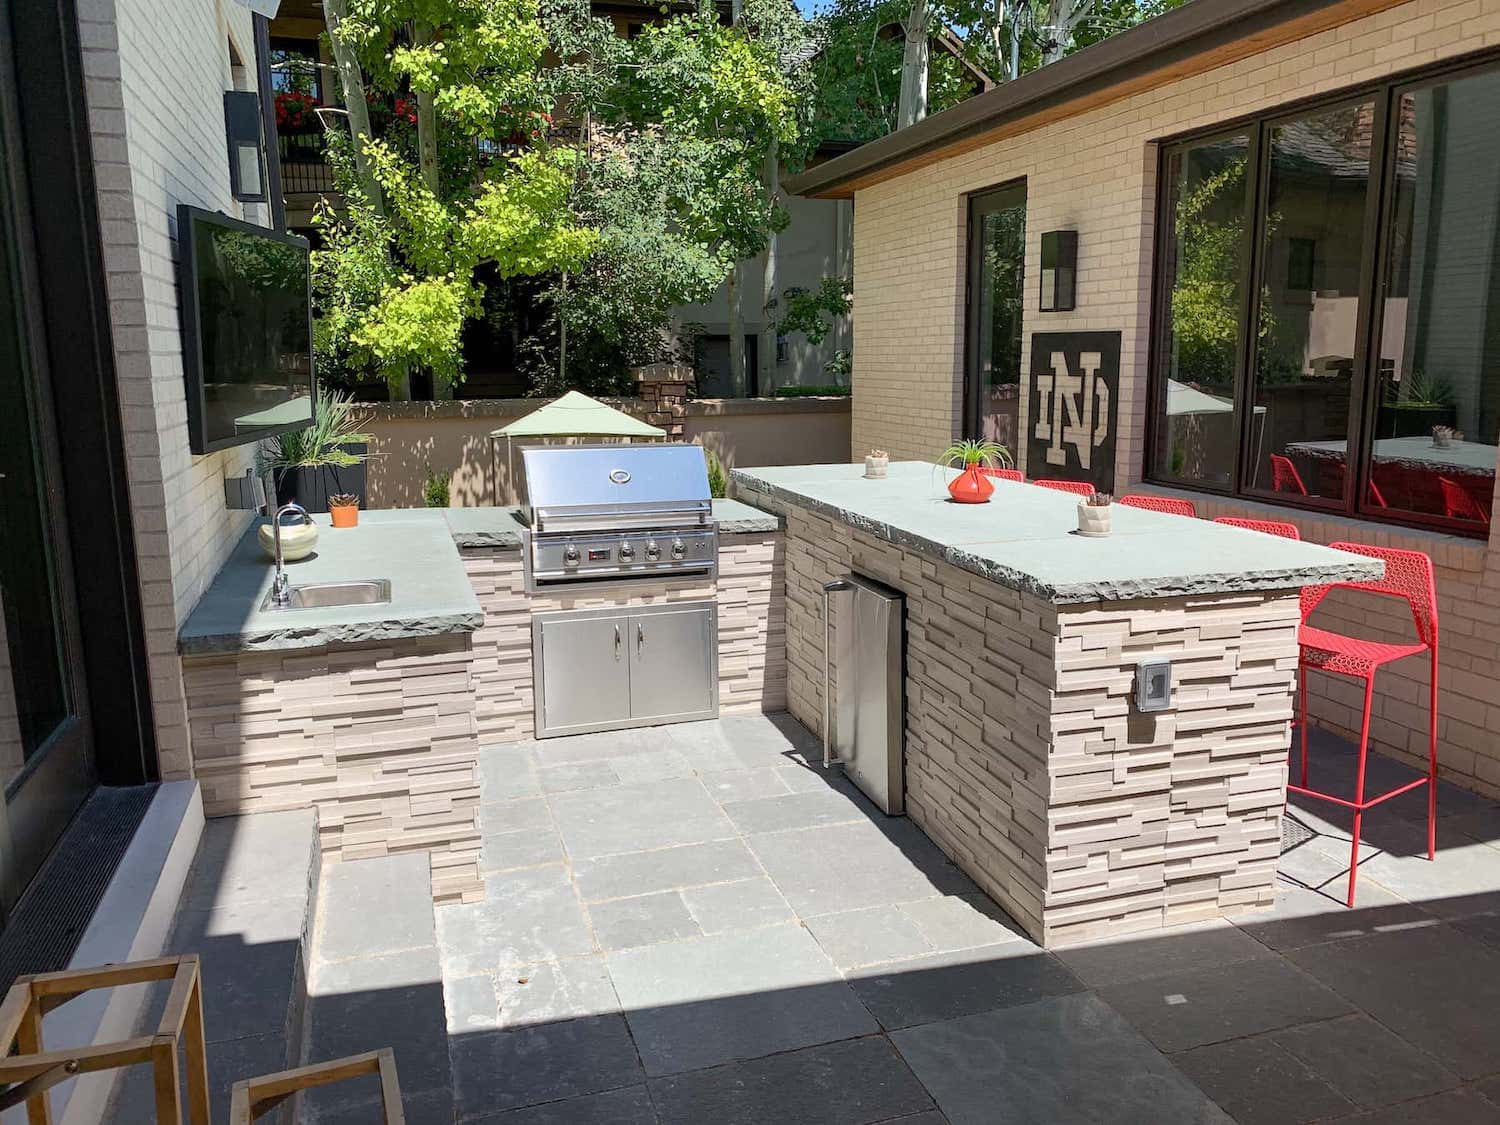 Outdoor Kitchen Paver Patio Bonnie Brae Denver CO